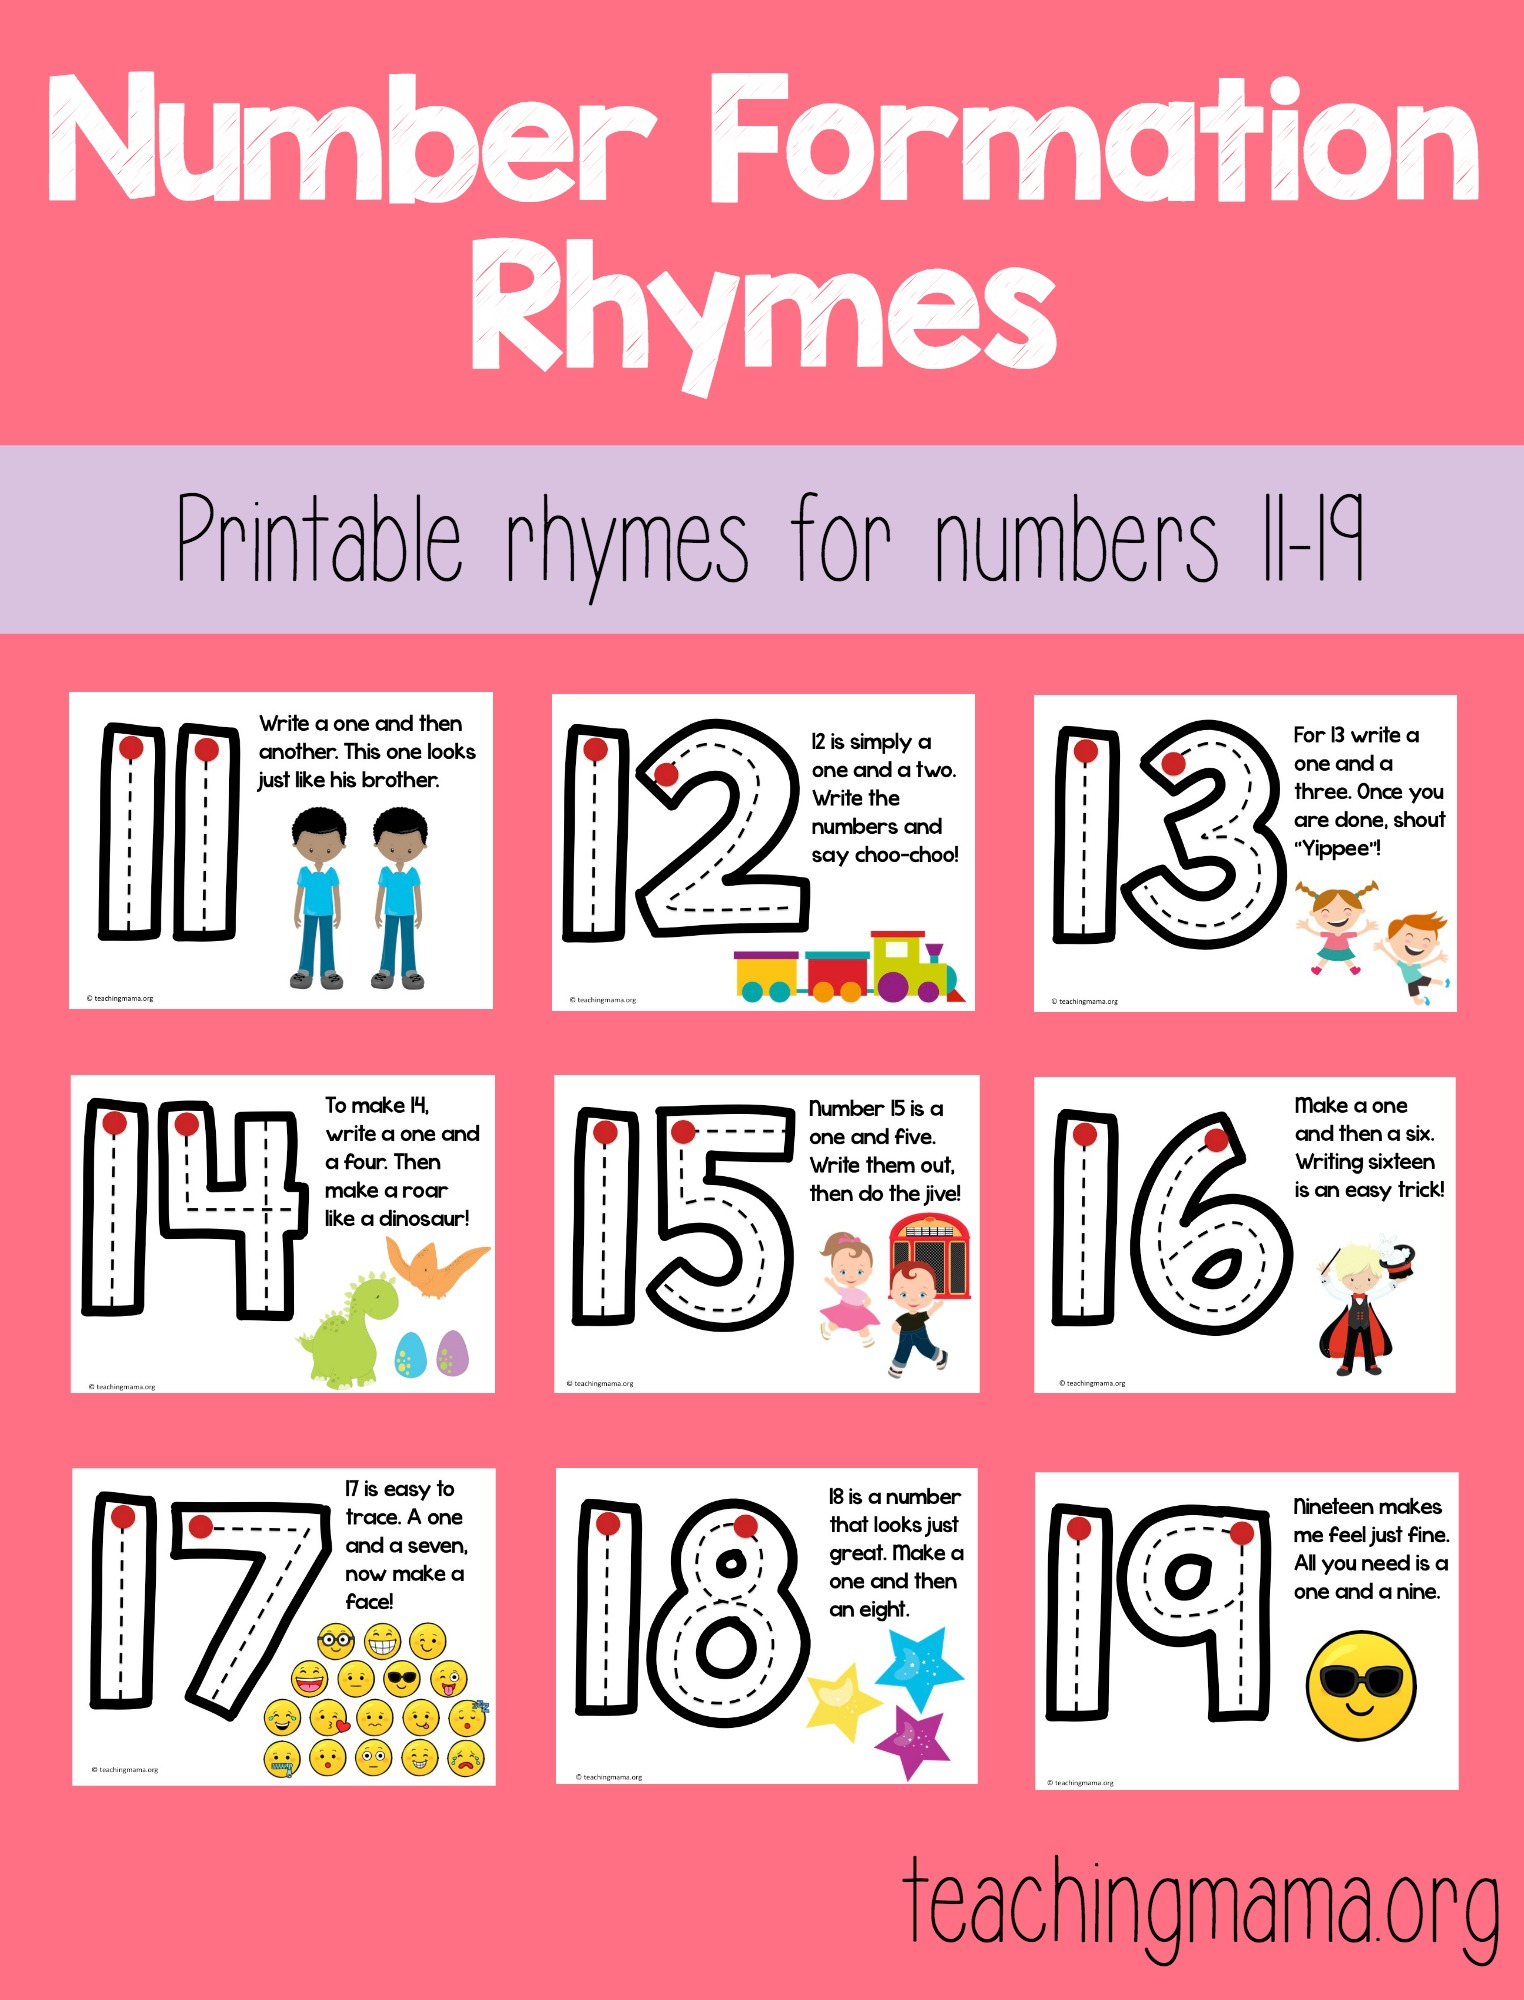 number formation rhymes 11-19